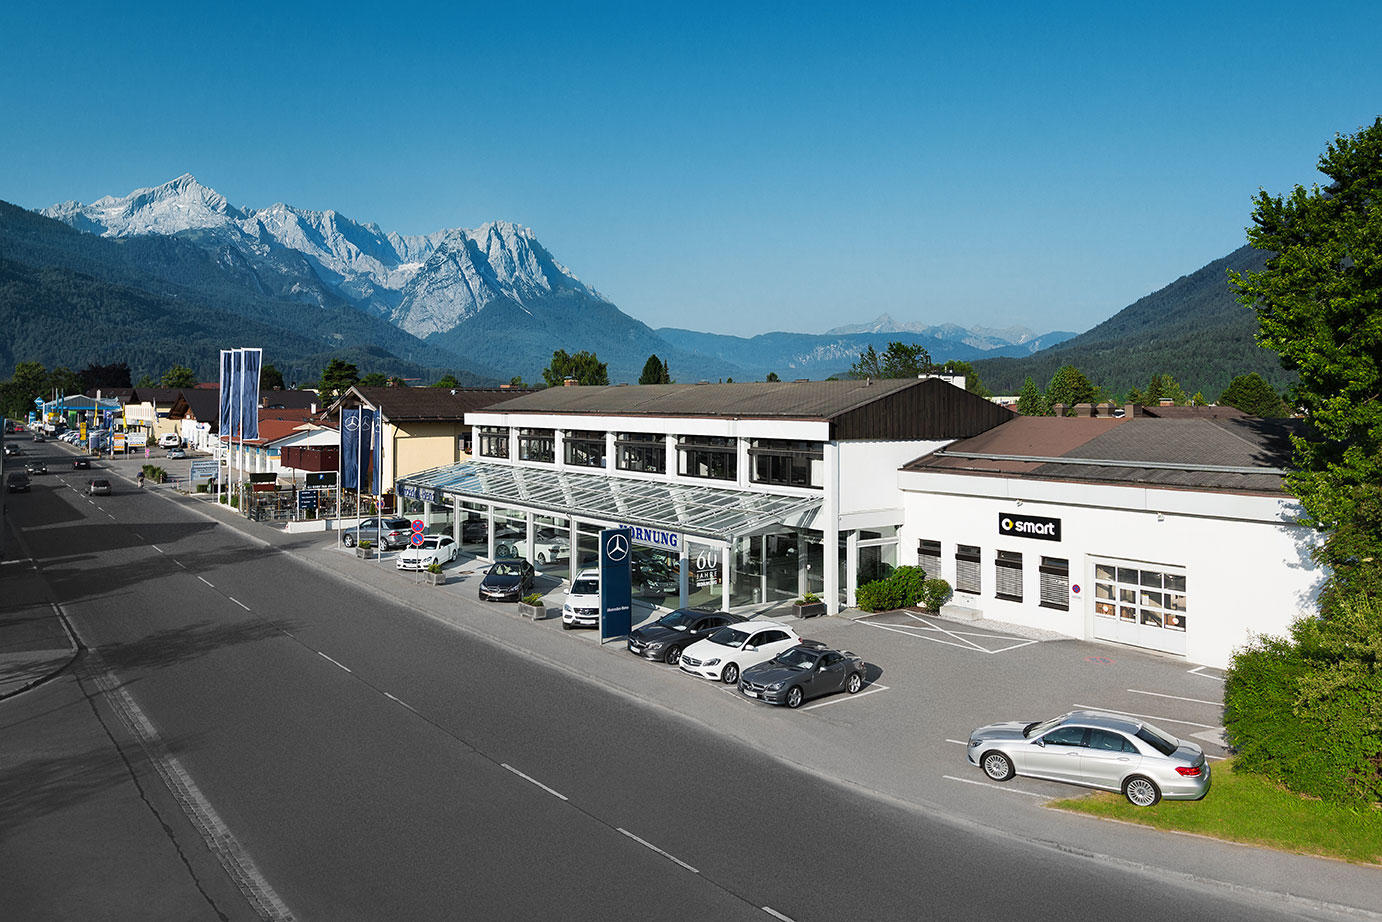 Showroom Garmisch-Partenkirchen